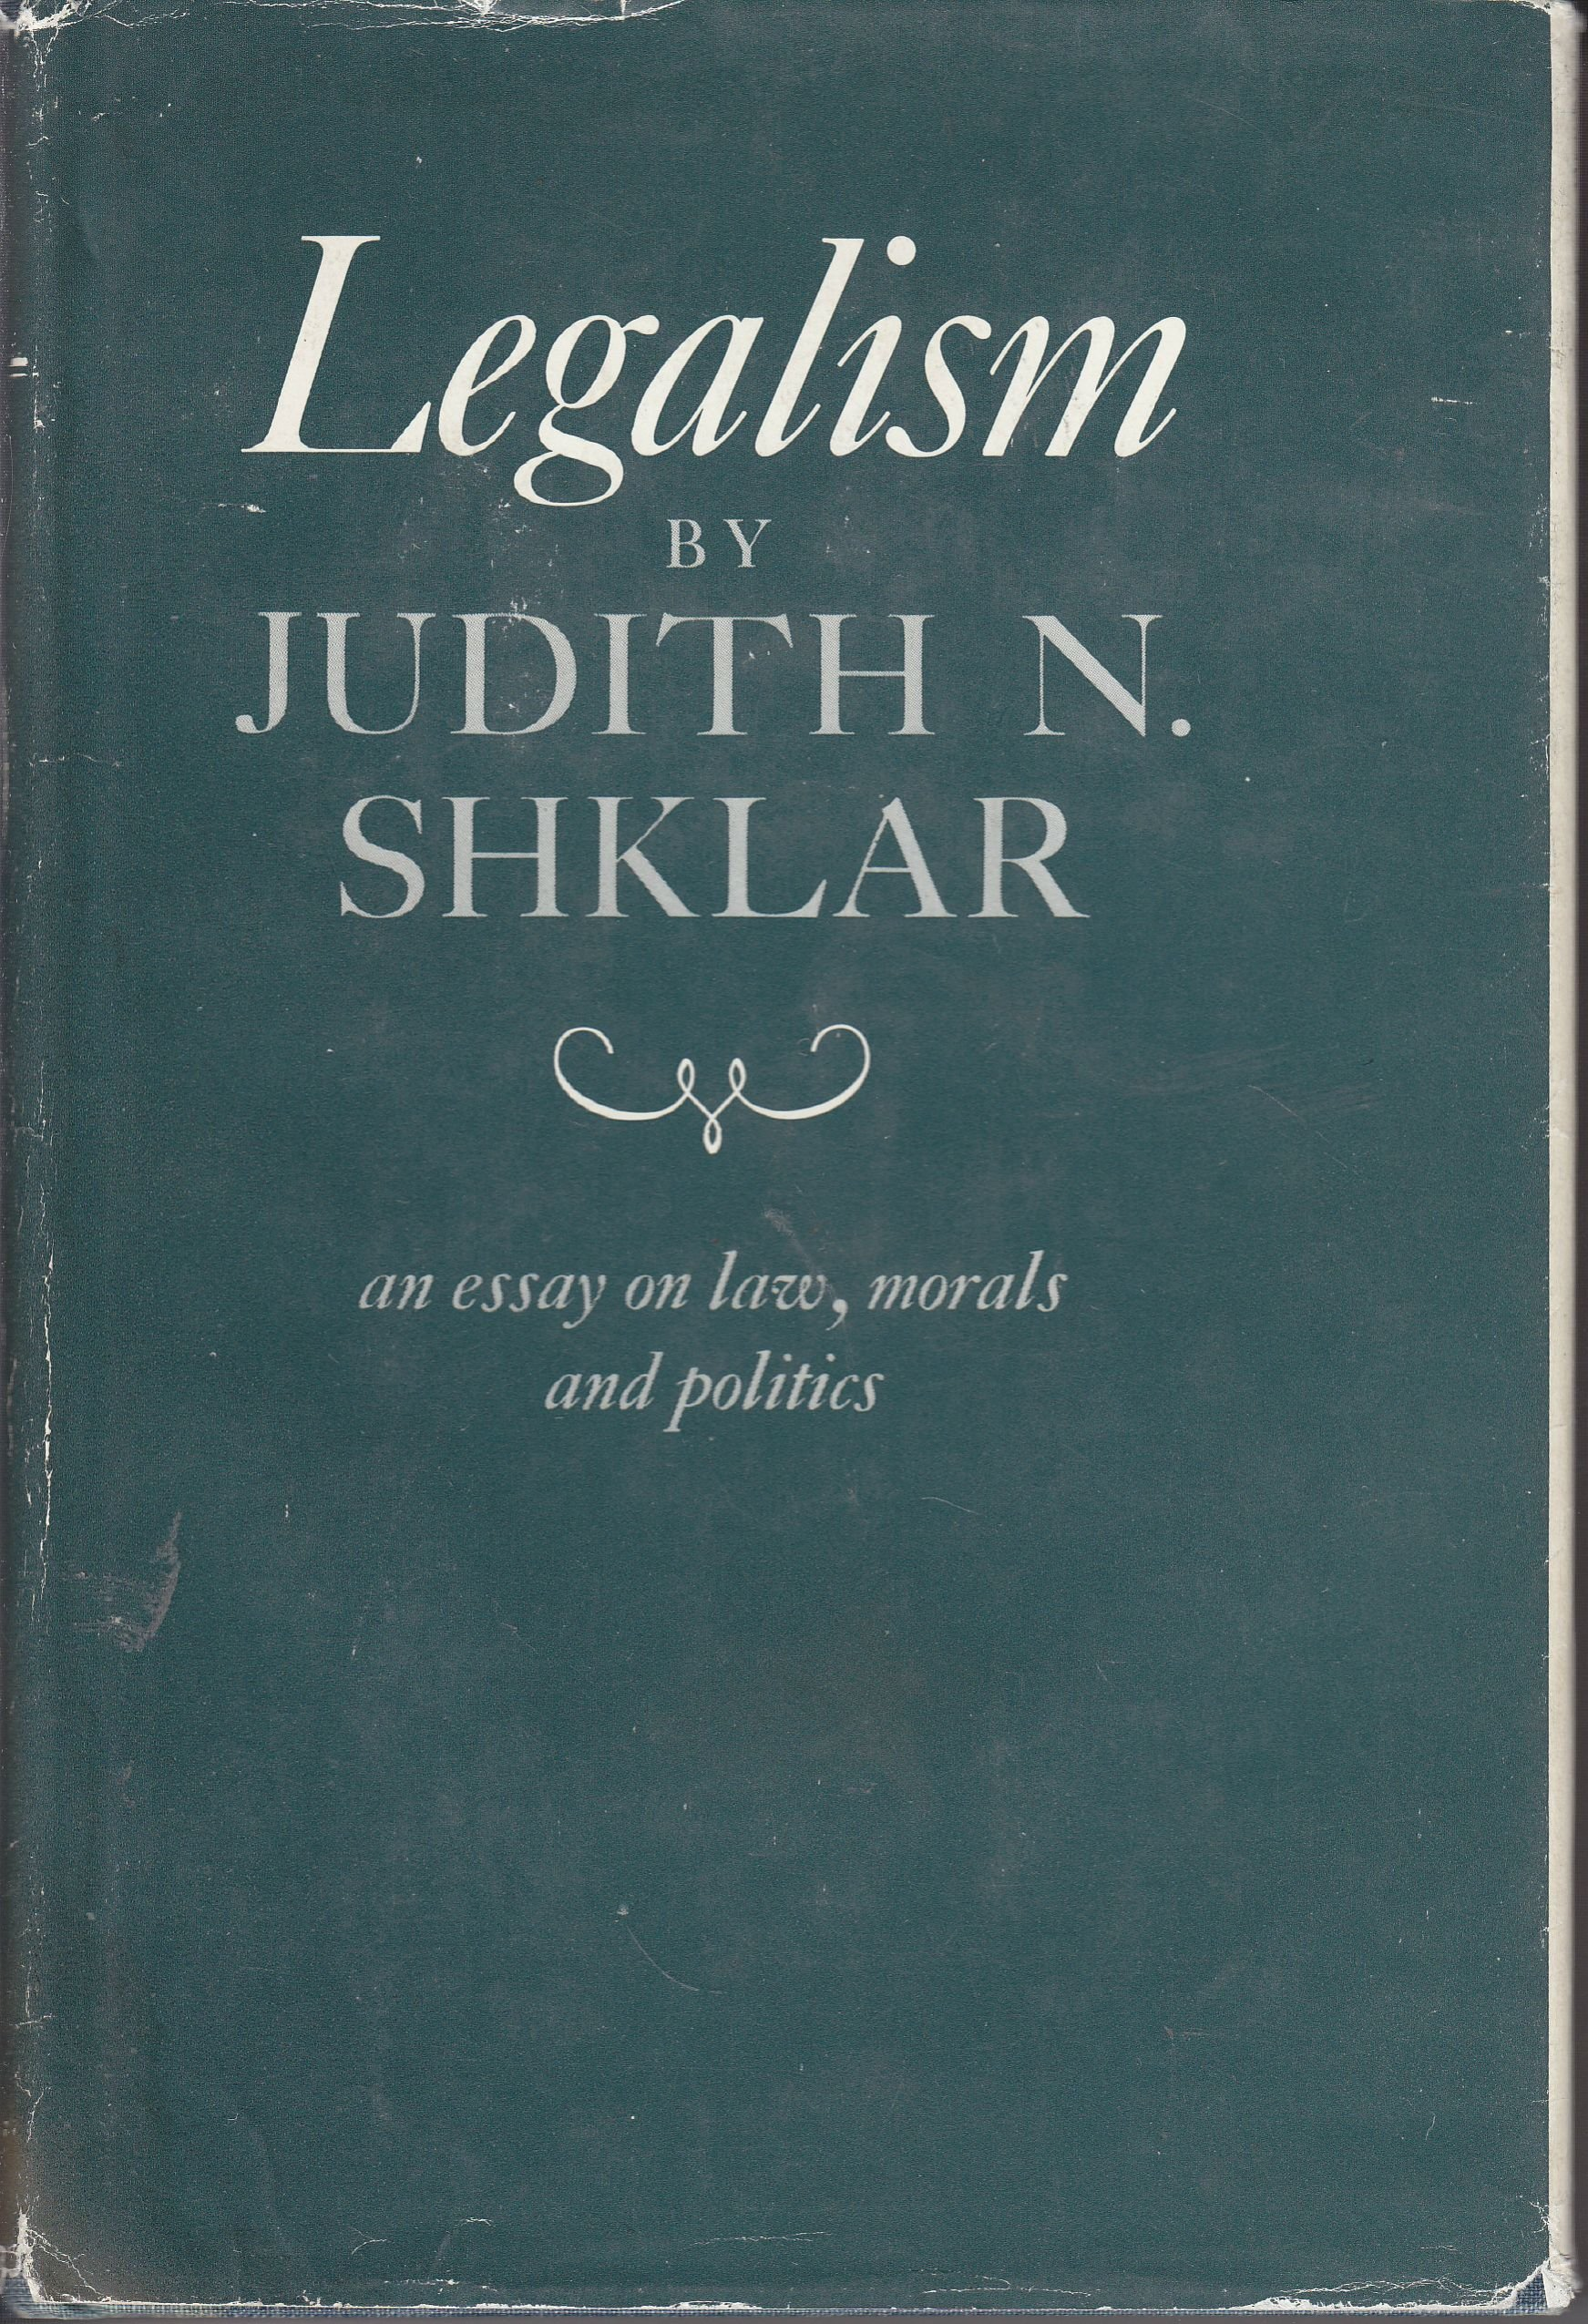 legalism an essay on law morals and politics judith n shklar legalism an essay on law morals and politics judith n shklar com books